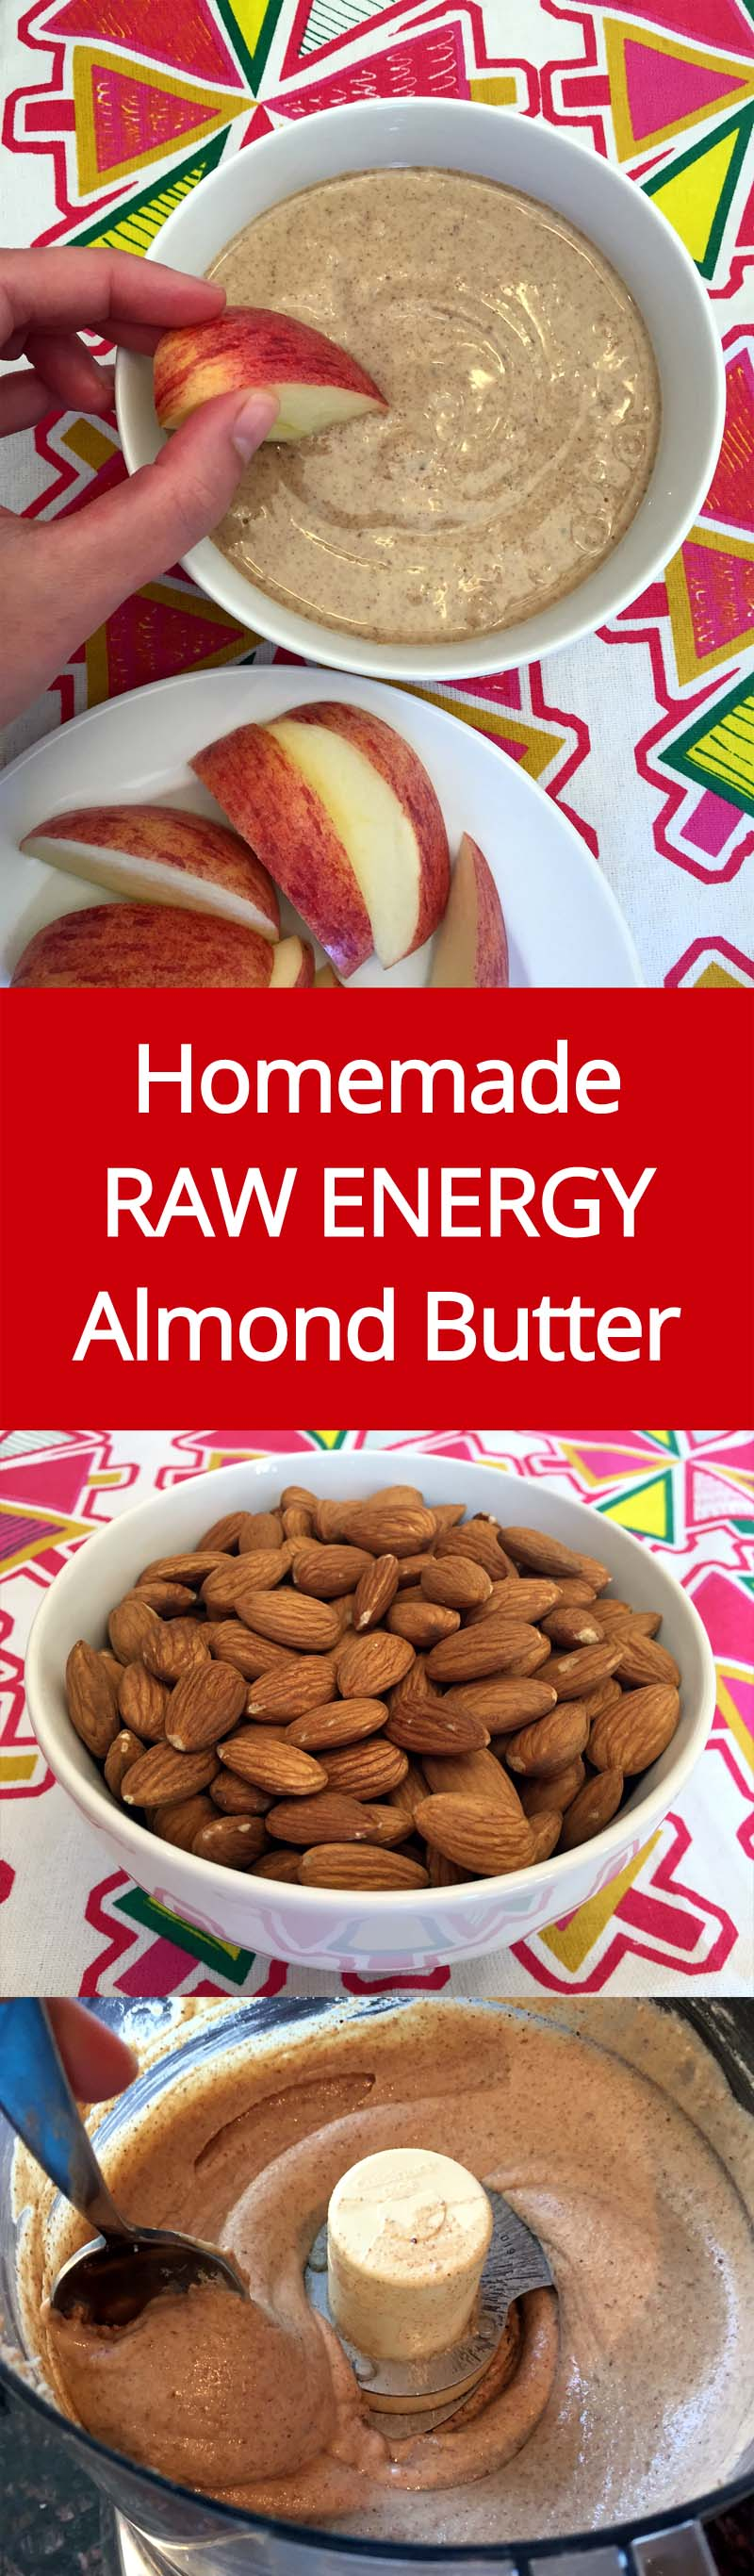 Homemade Almond Butter Recipe - How To Make Raw Organic Almond Butter With Your Food Processor!   MelanieCooks.com